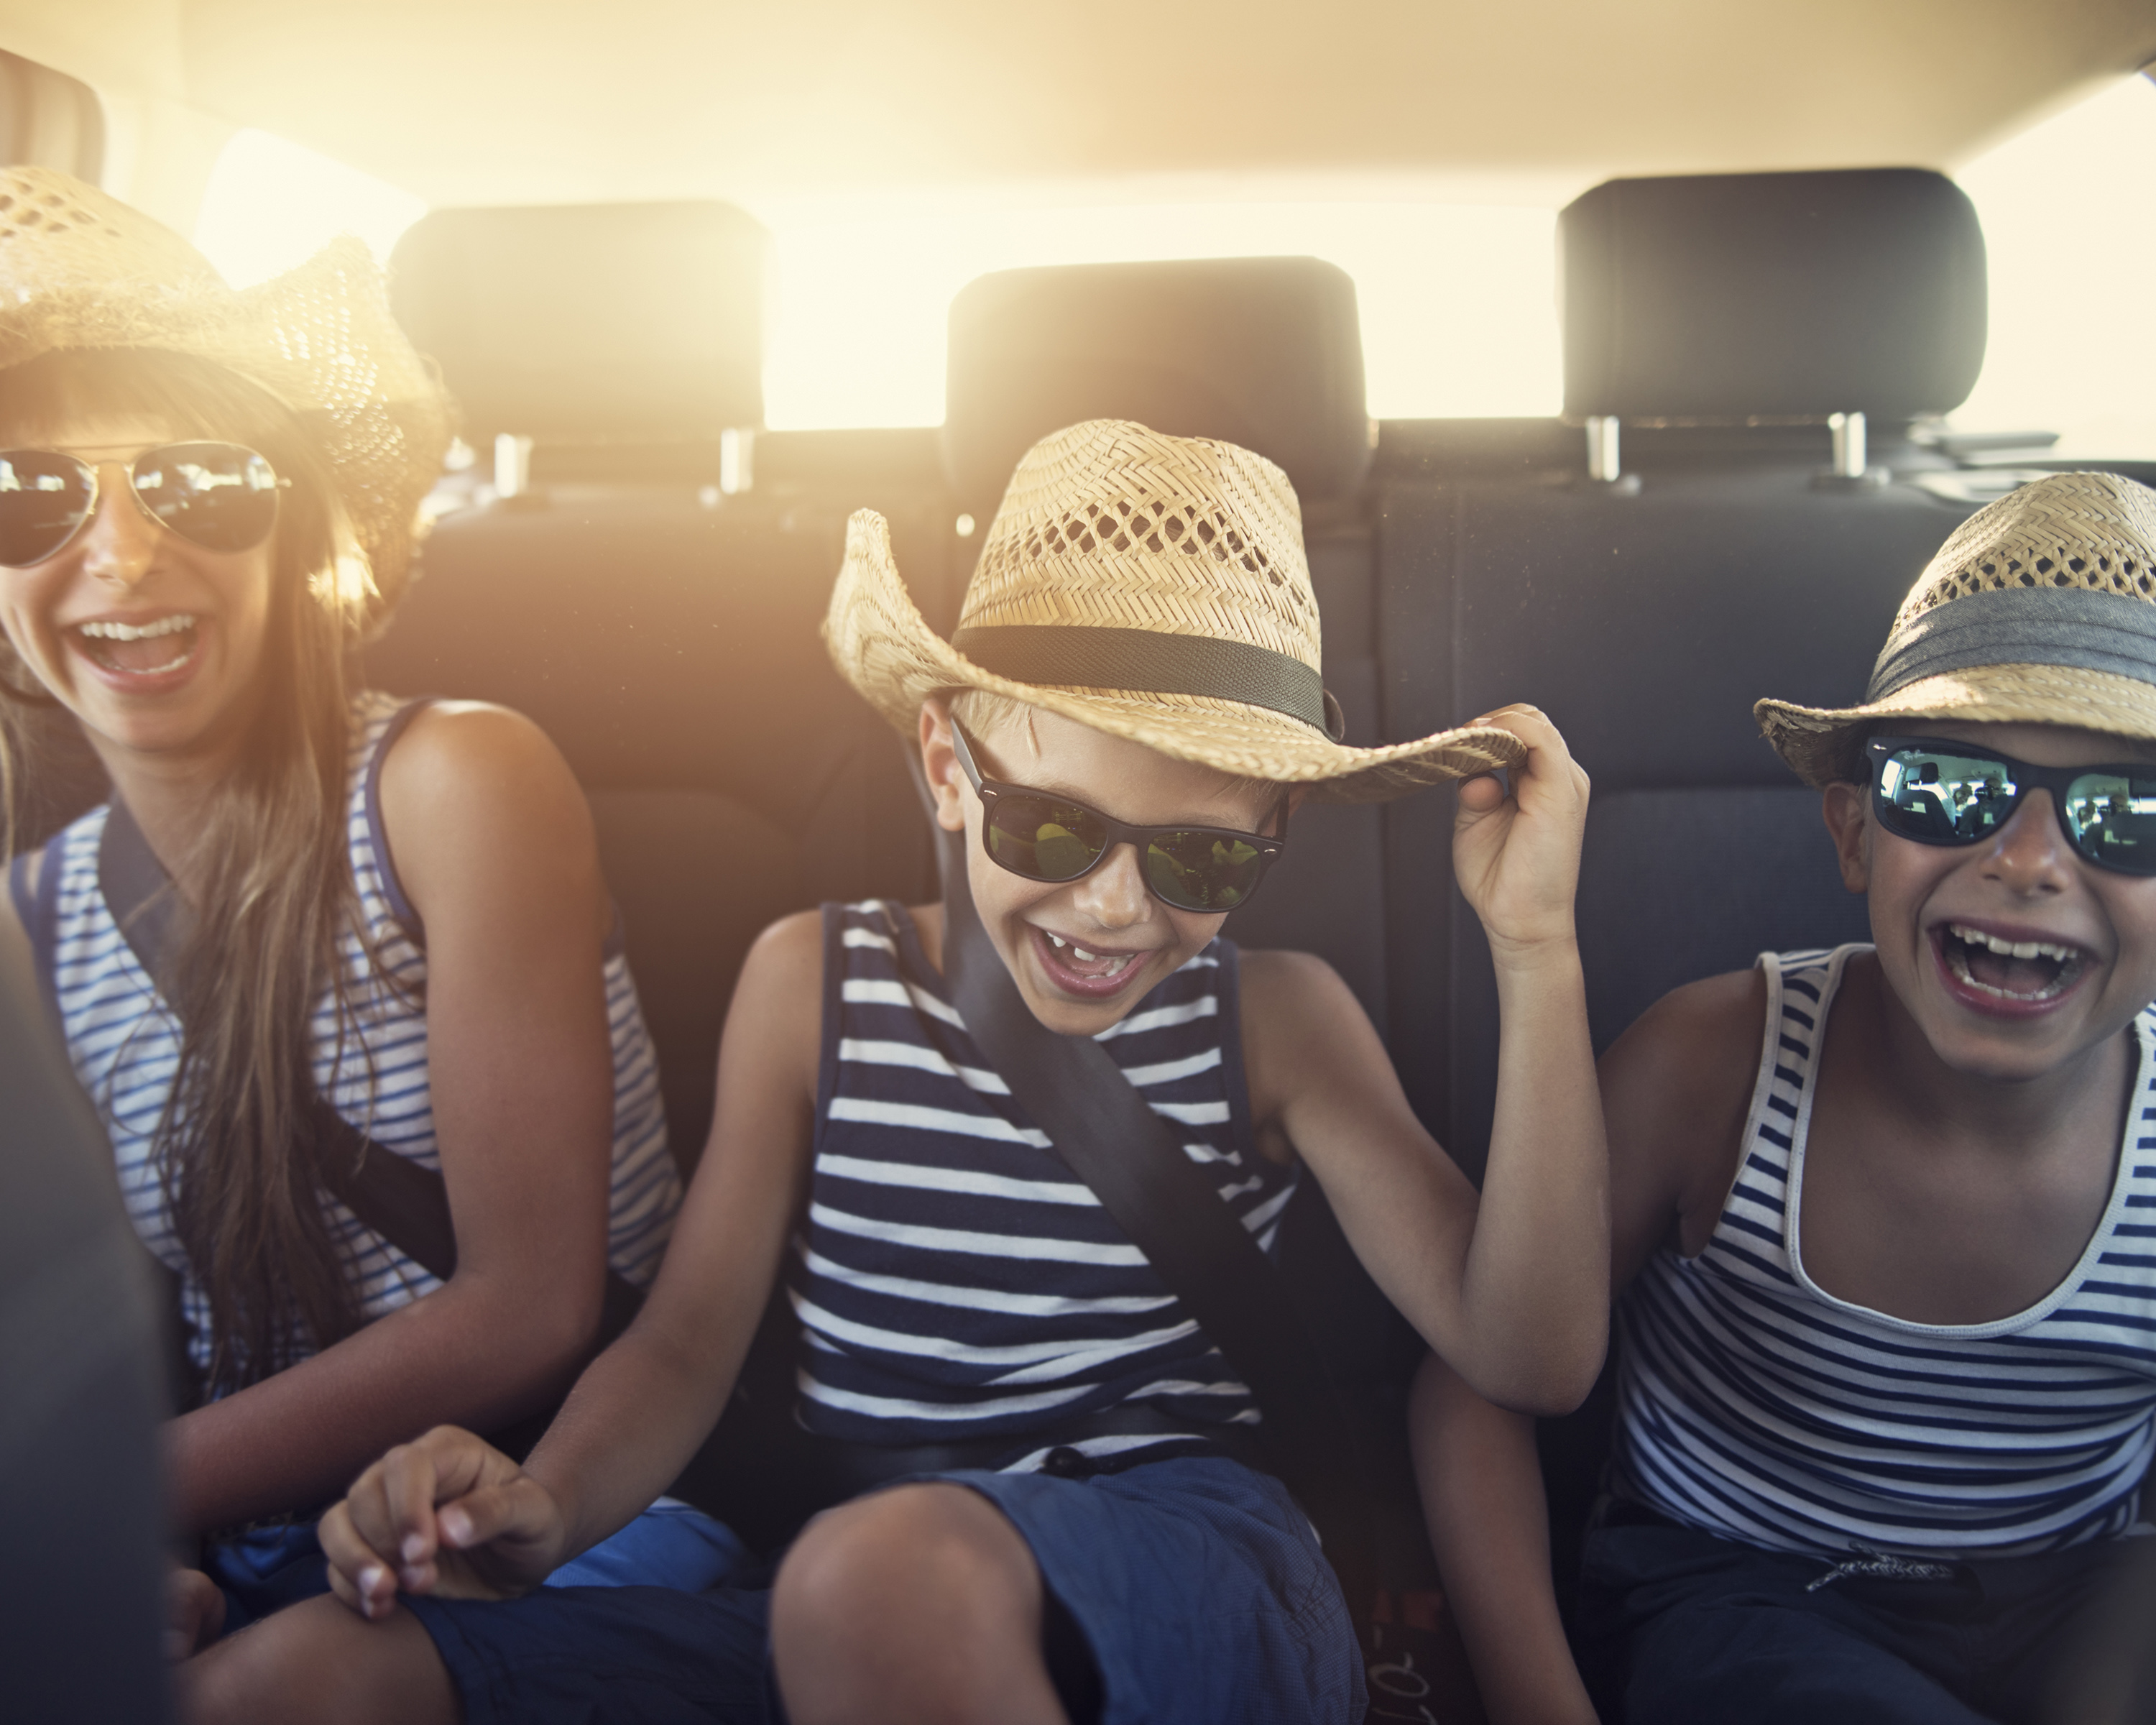 Kids in the back seat of a car enjoying a road trip on sunny day